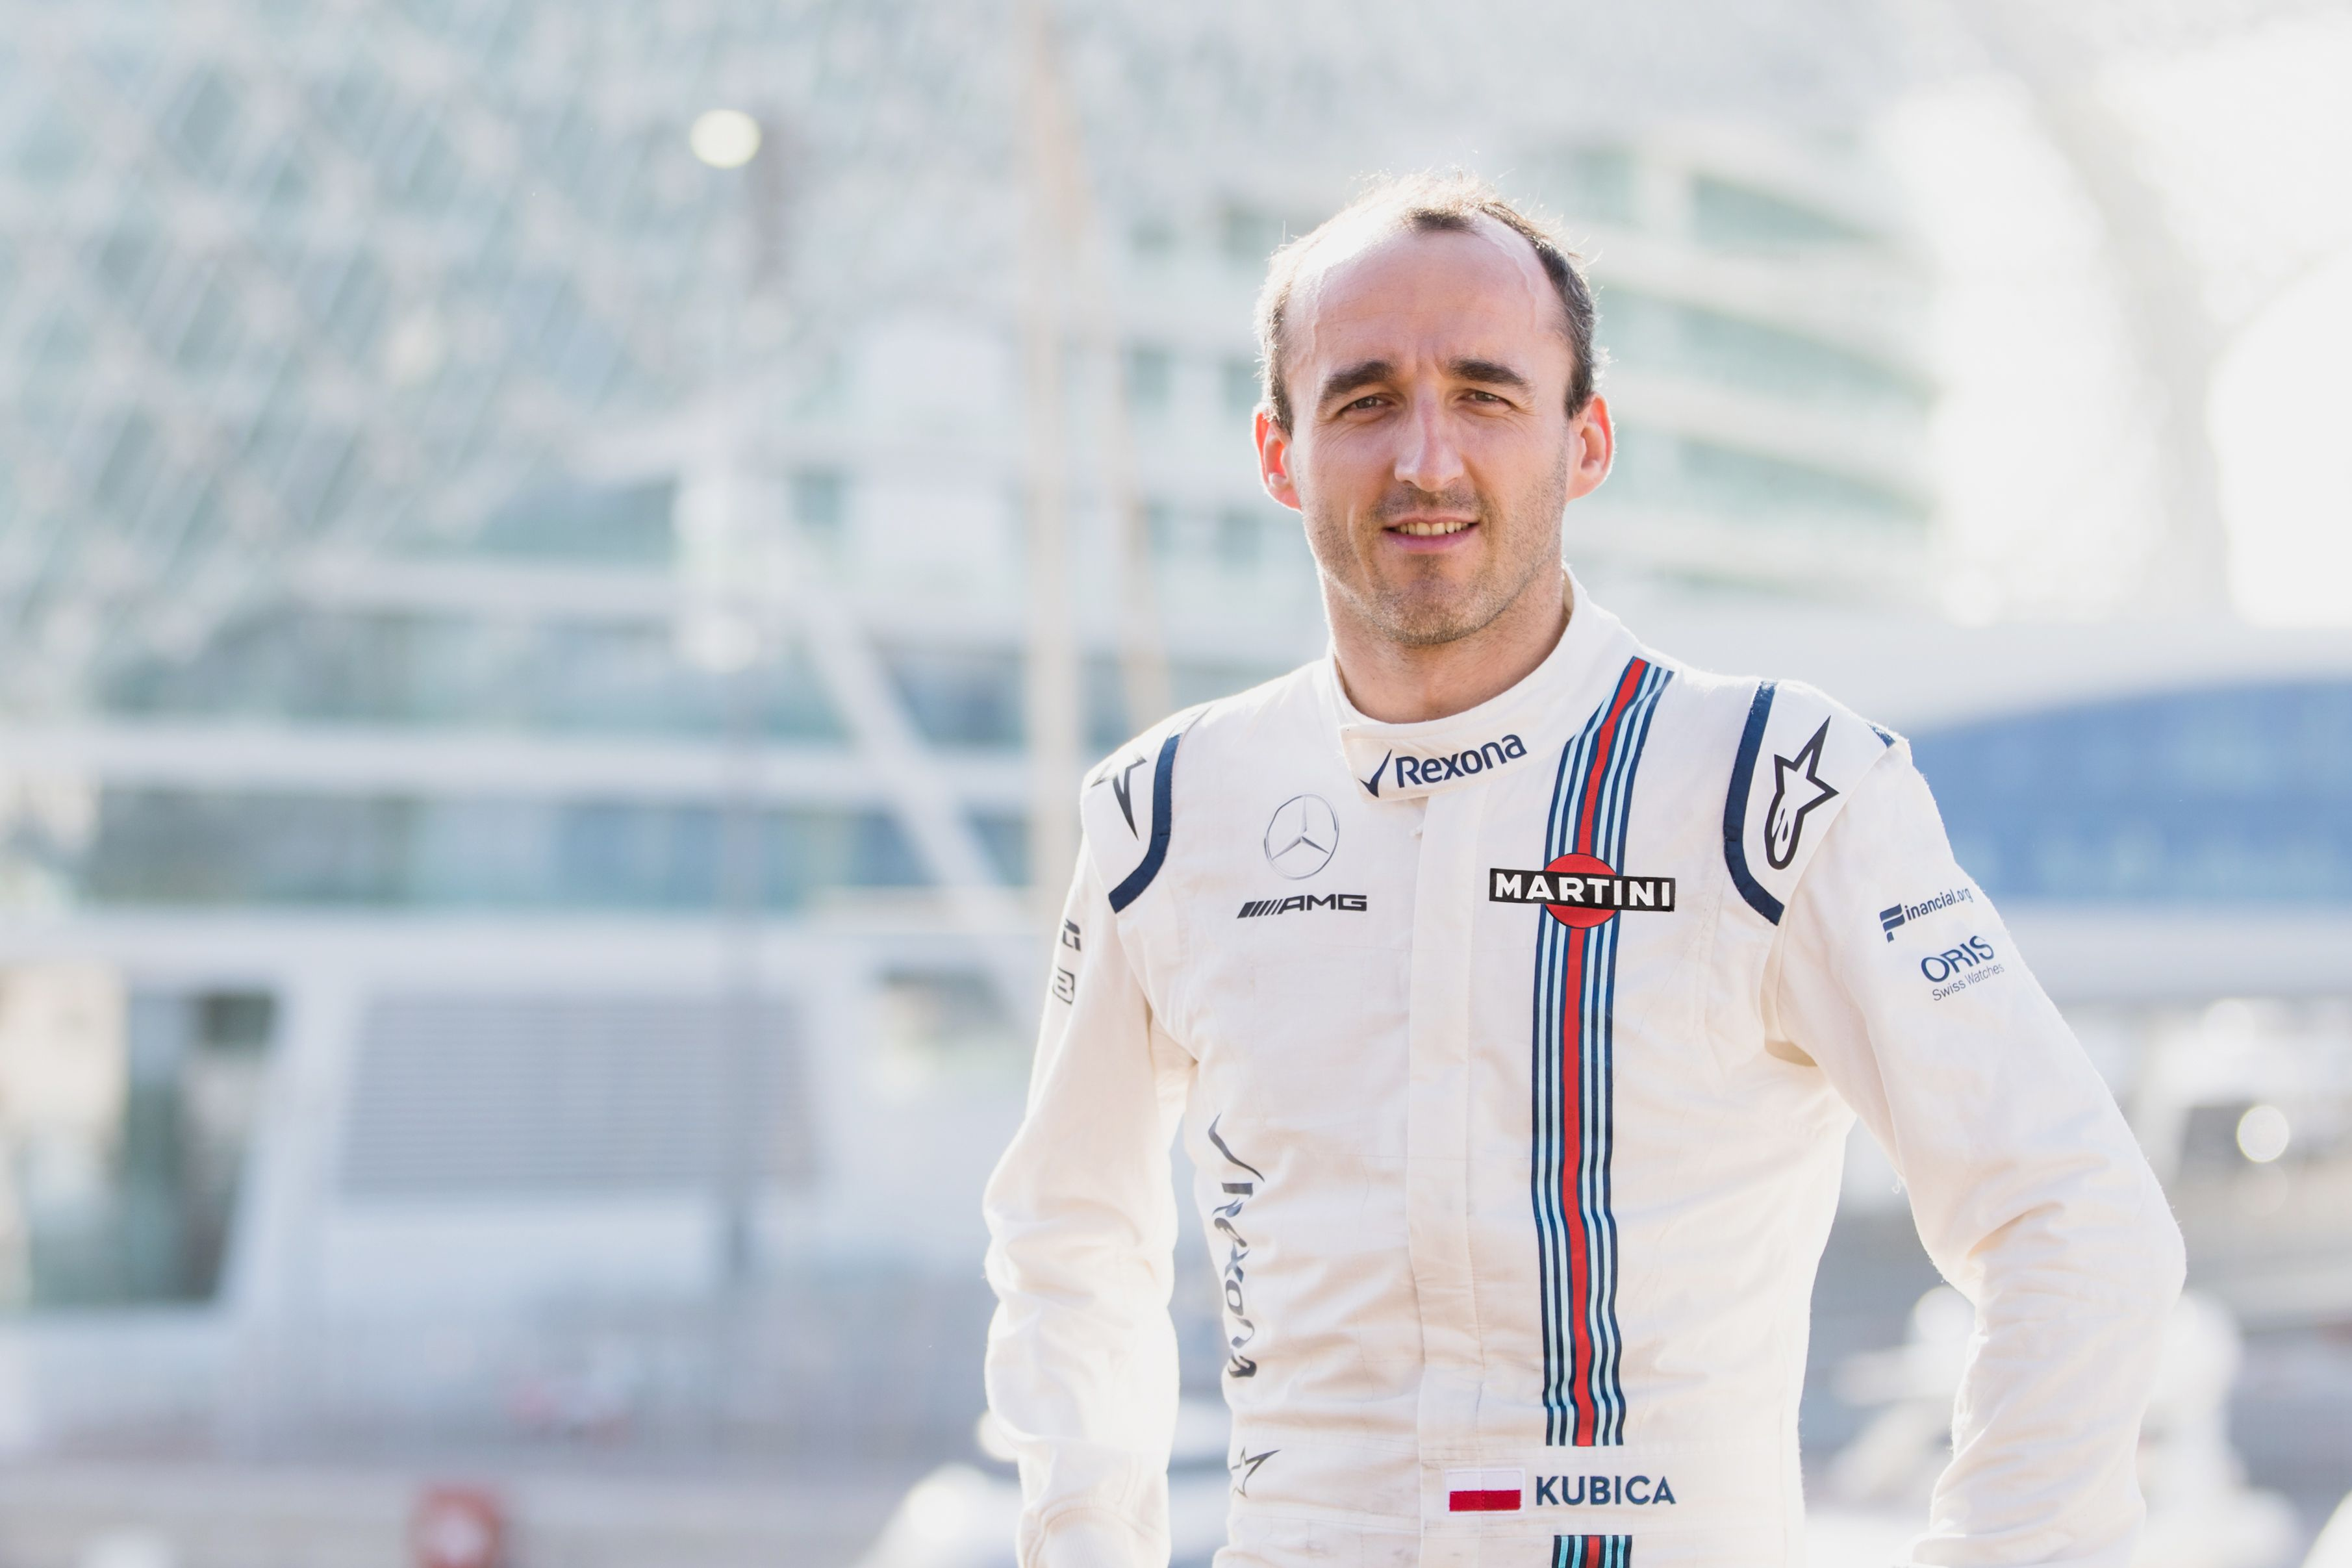 Williams Announces Robert Kubica As 2018 Reserve And